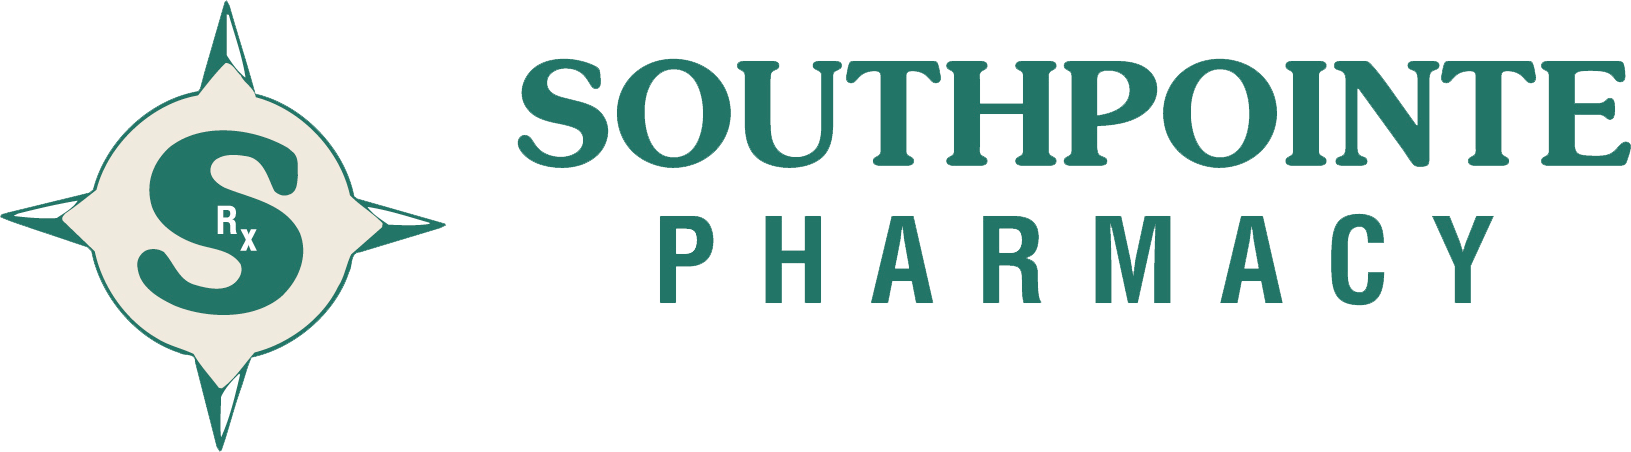 Southpointe Pharmacy